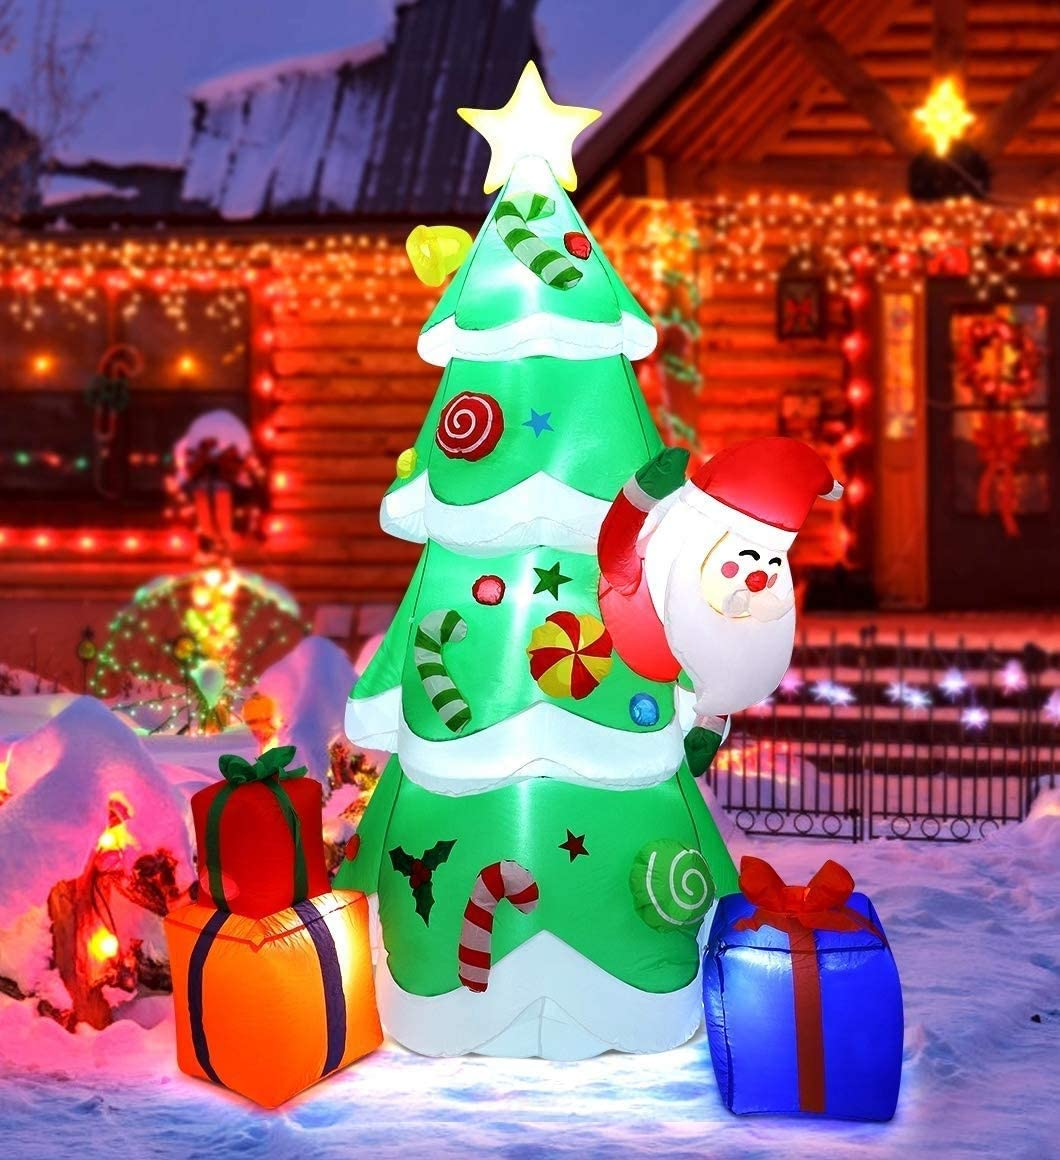 EPROSMIN 7ft Christmas Inflatable Decorations Tree - Blow Up with Multicolor Gift Boxes and Santa Built-in LED Lights for Christmas Indoor Outdoor Yard Garden Party Decorations